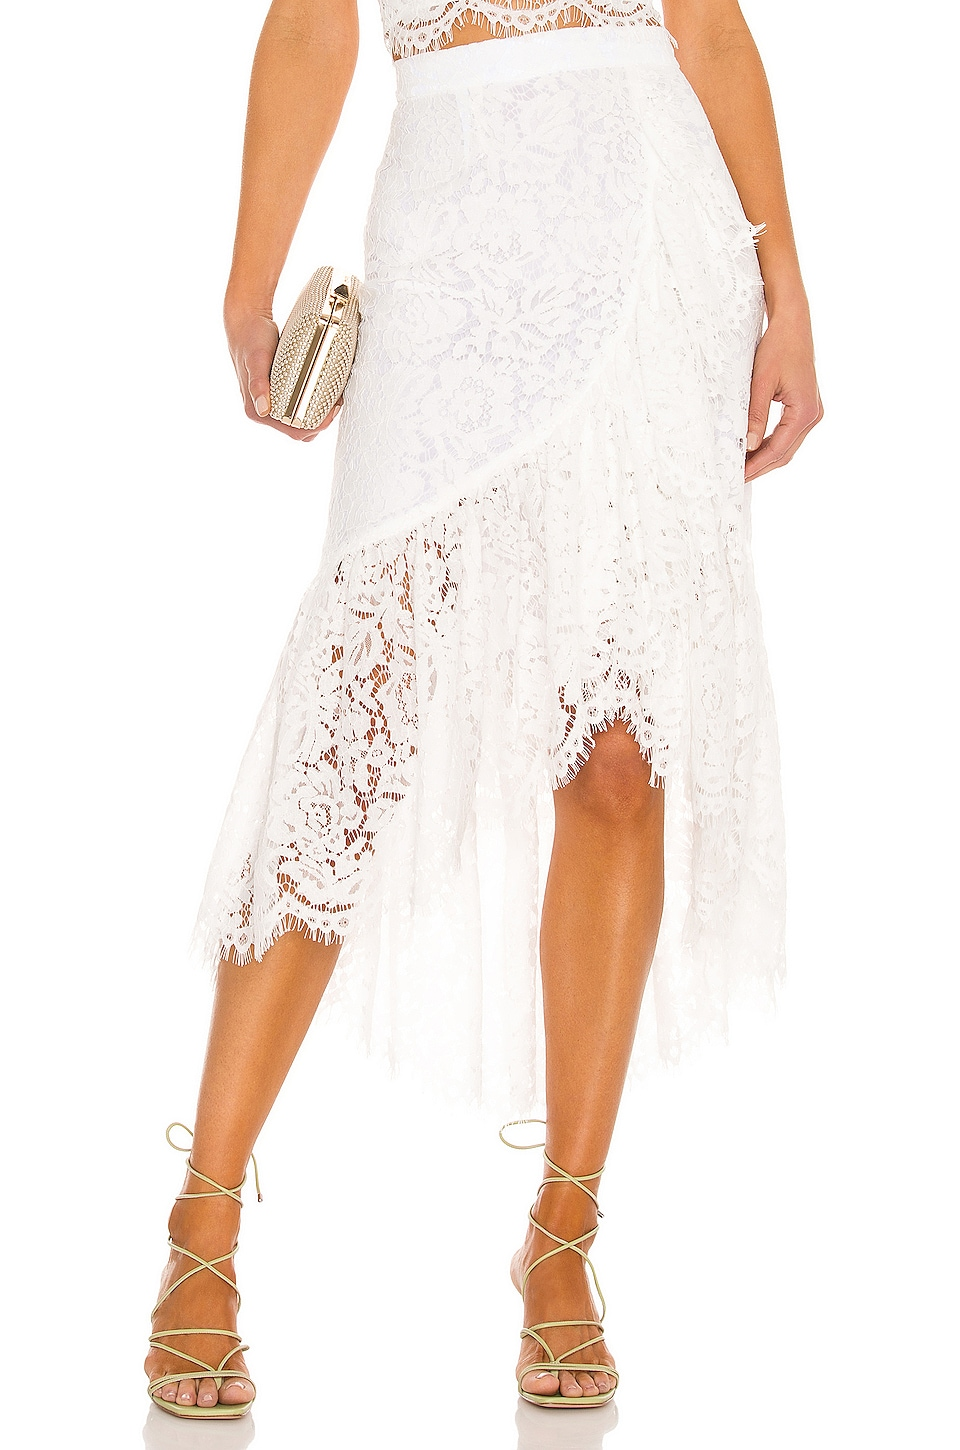 Just BEE Queen Carmella Skirt in White